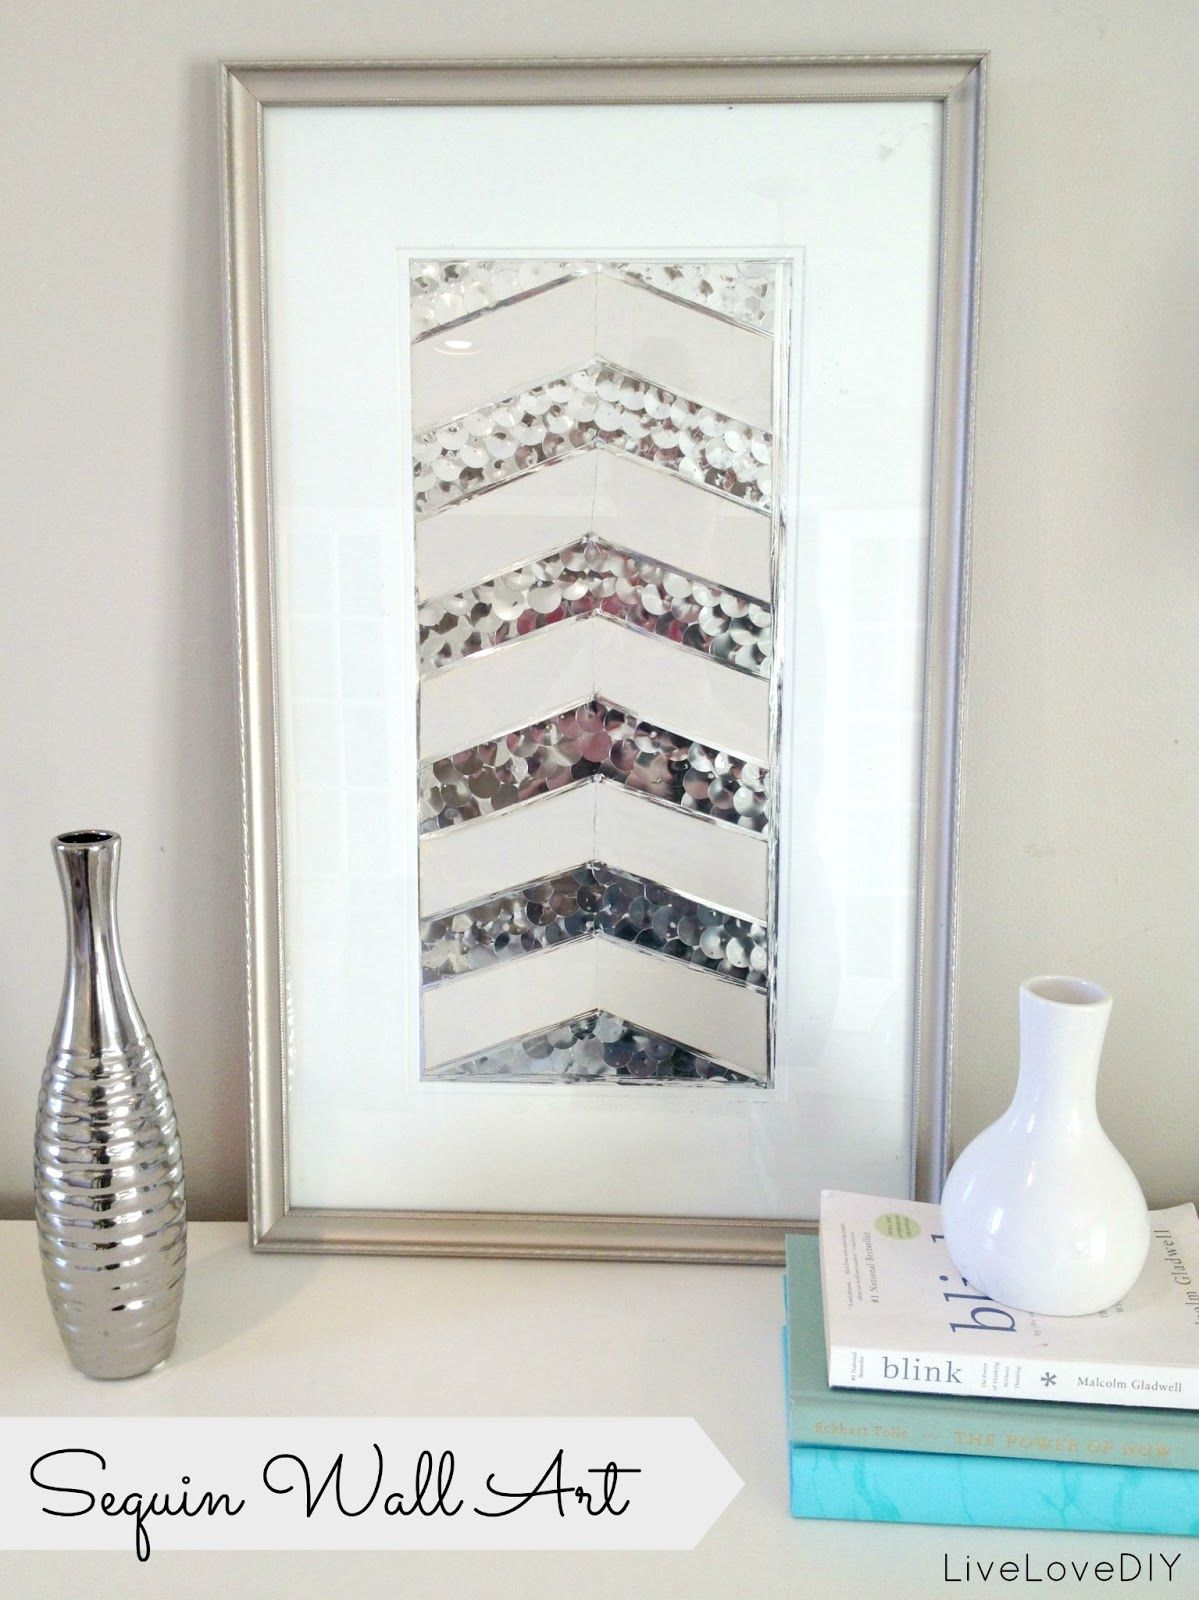 Livelovediy wall art make chic art for cheap dreaminu of home